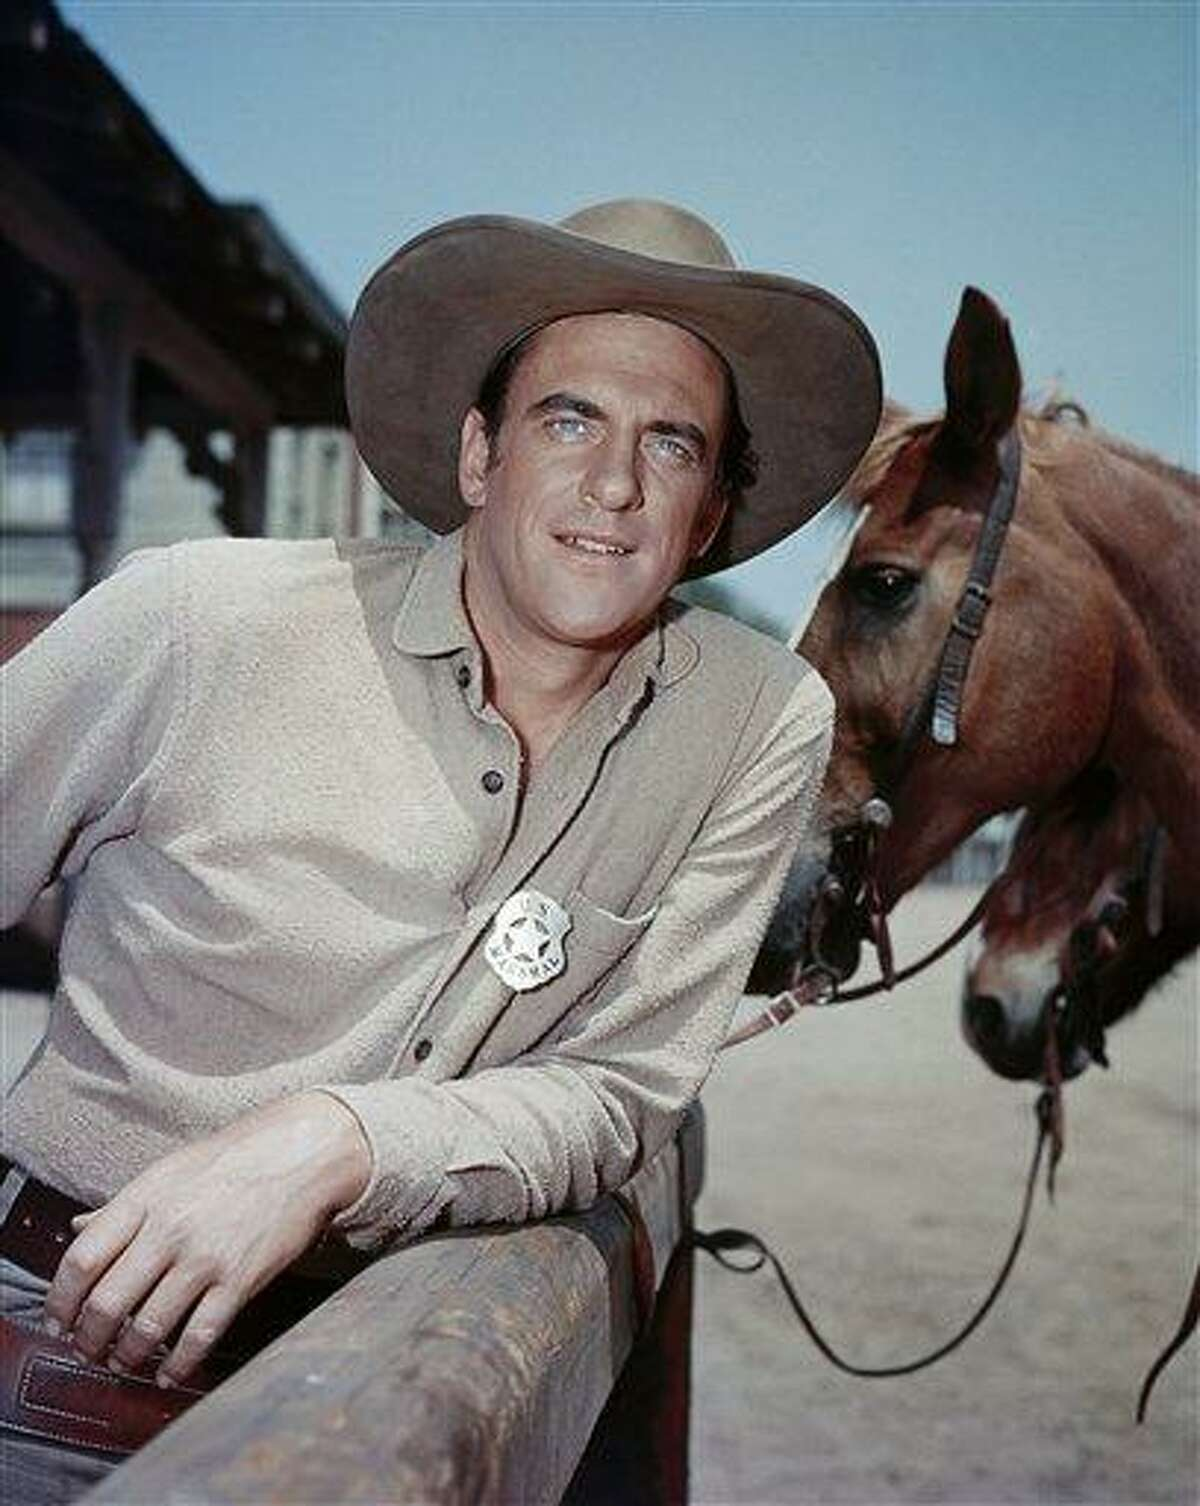 In this undated publicity image released by CBS, Actor James Arness is shown as Marshal Matt Dillon in